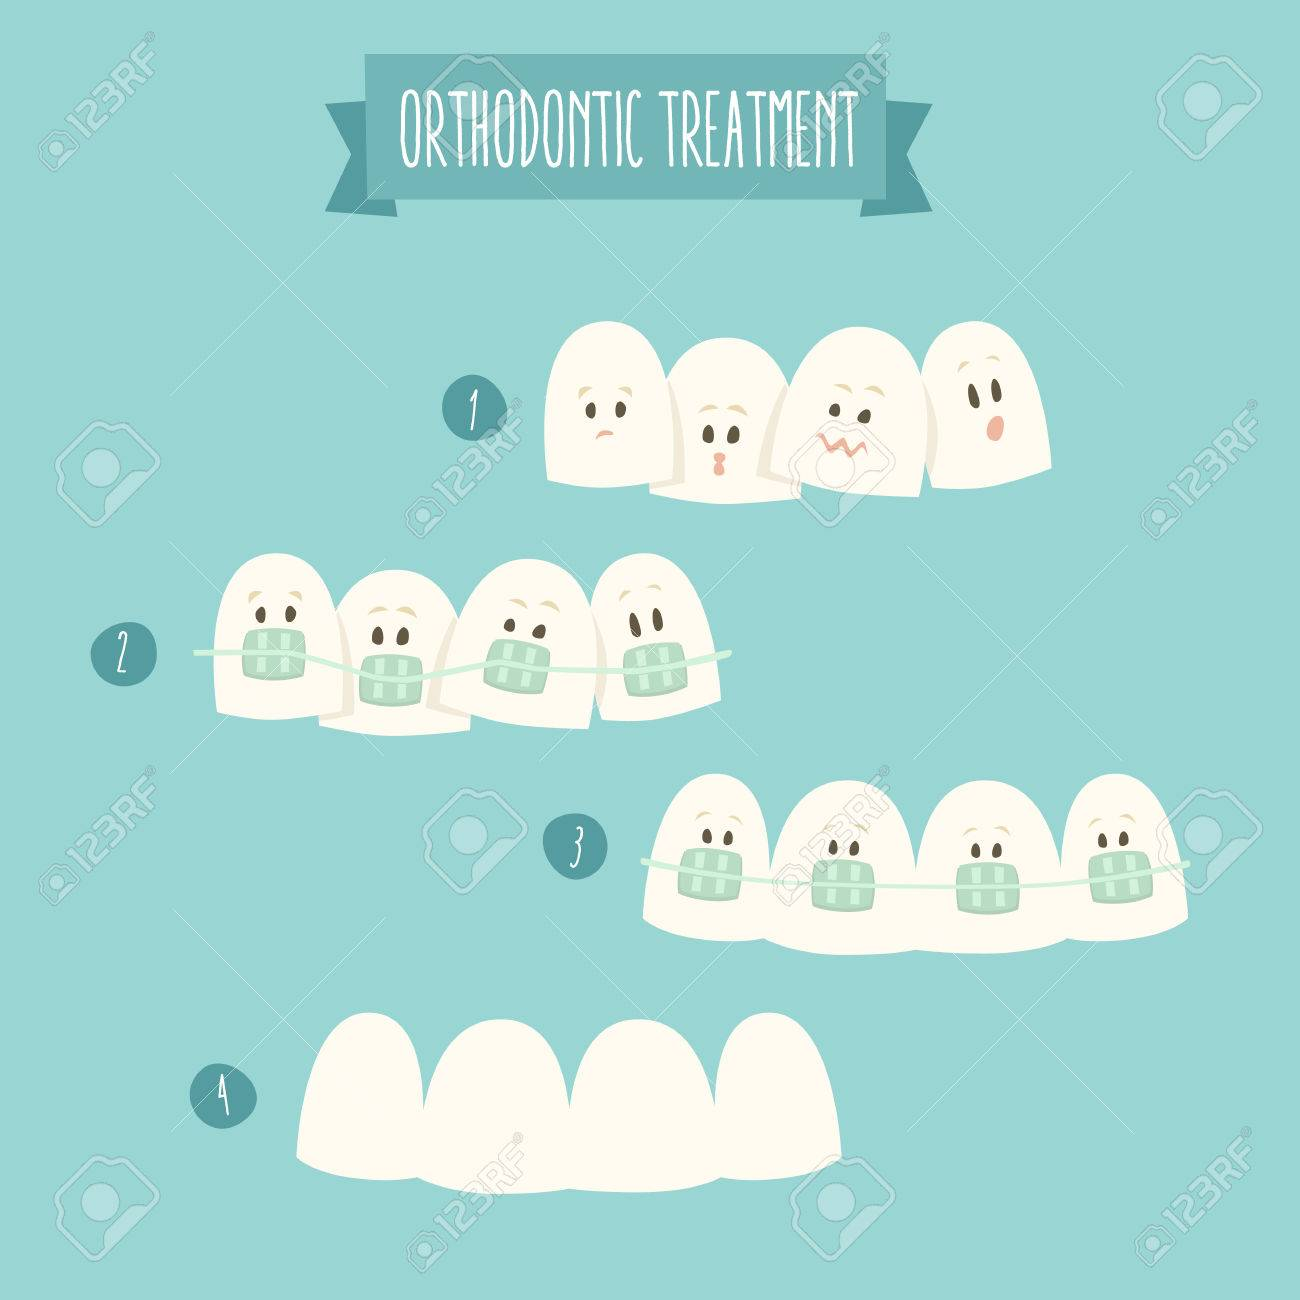 Cliparts for Orthodontic Treatment